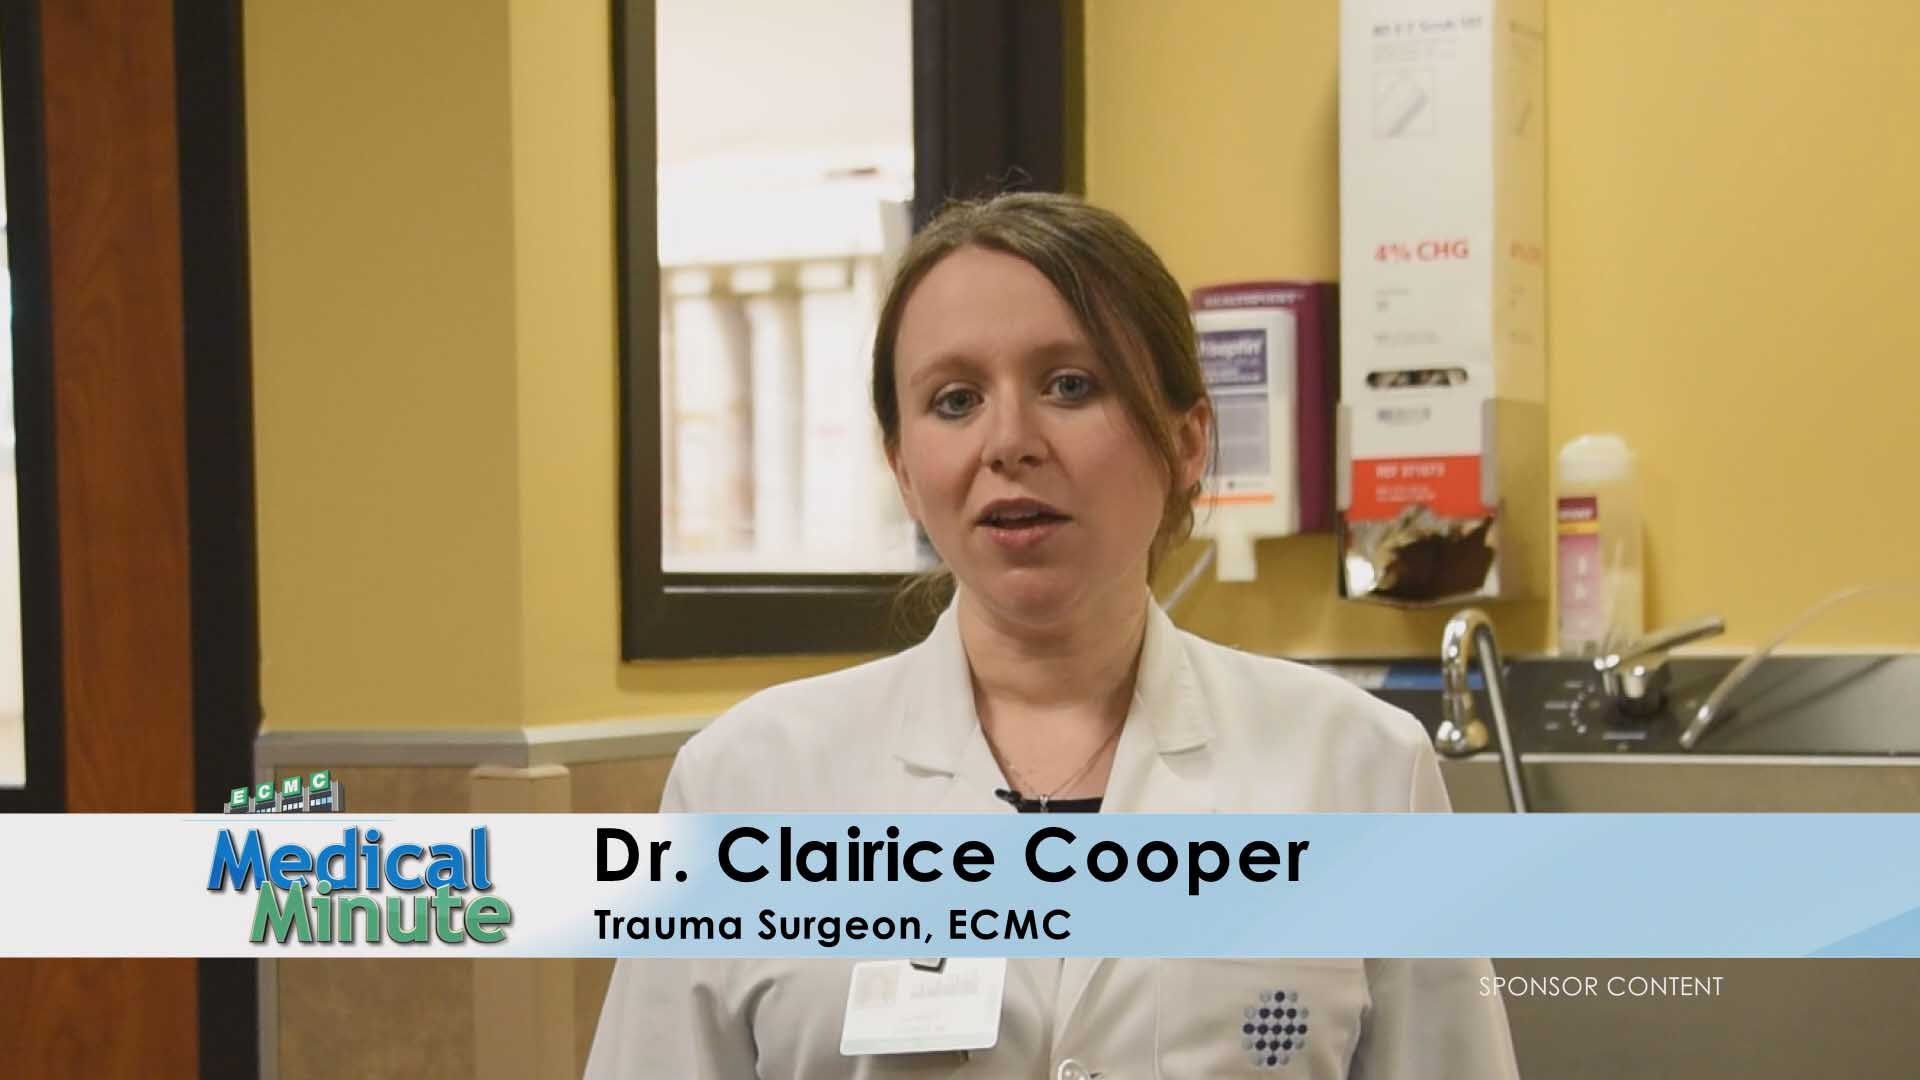 ECMC MEDICAL MINUTE DR.COOPER DROWSY DRIVING 11.20.17